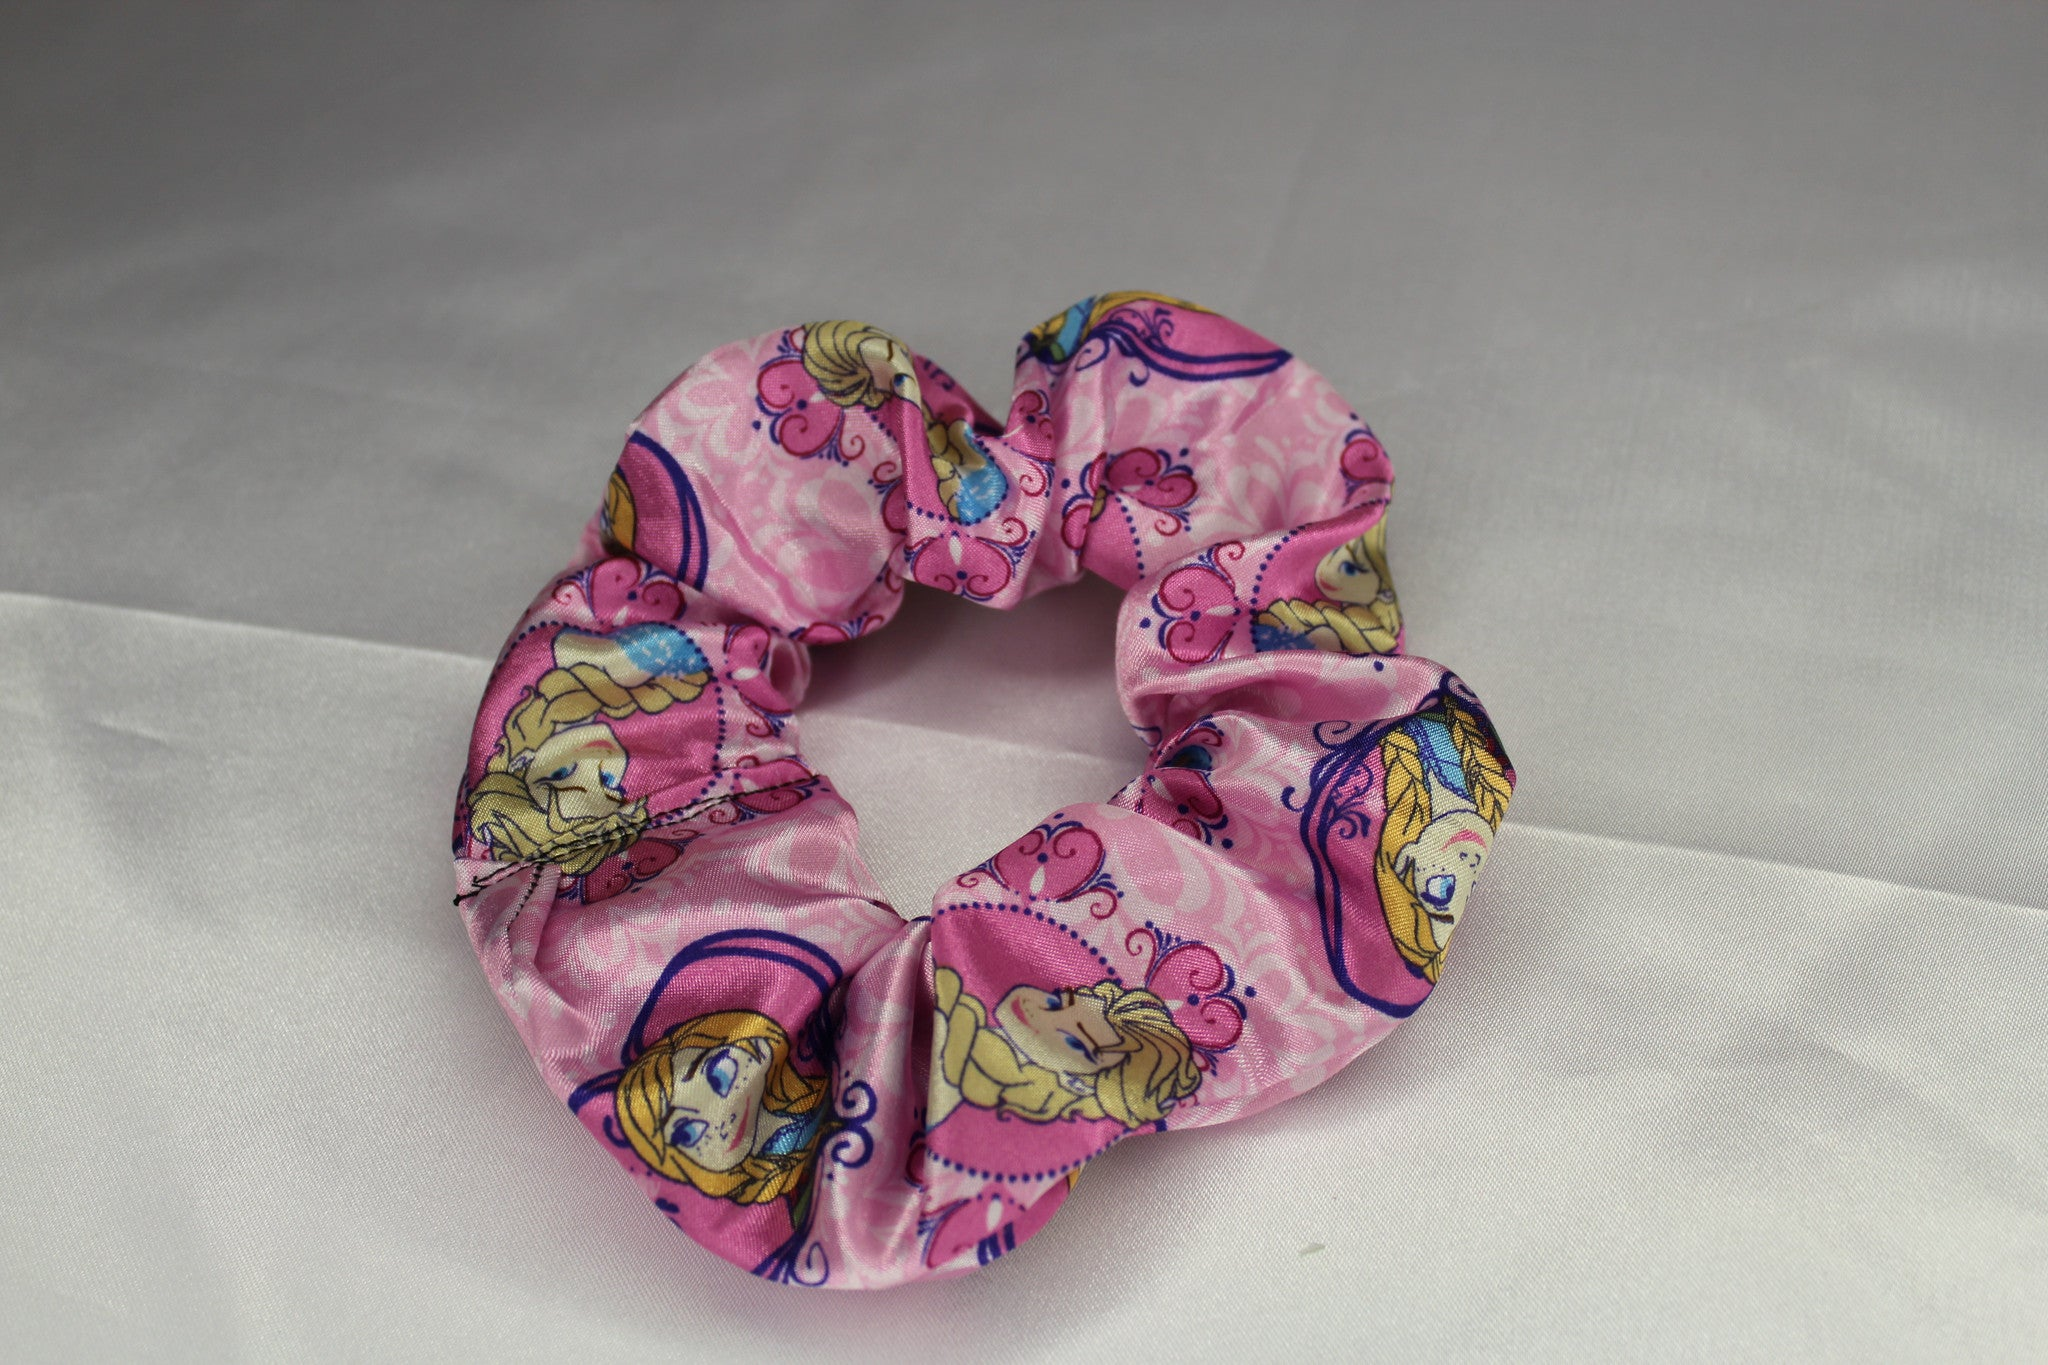 Disney's Frozen Satin Scrunchie